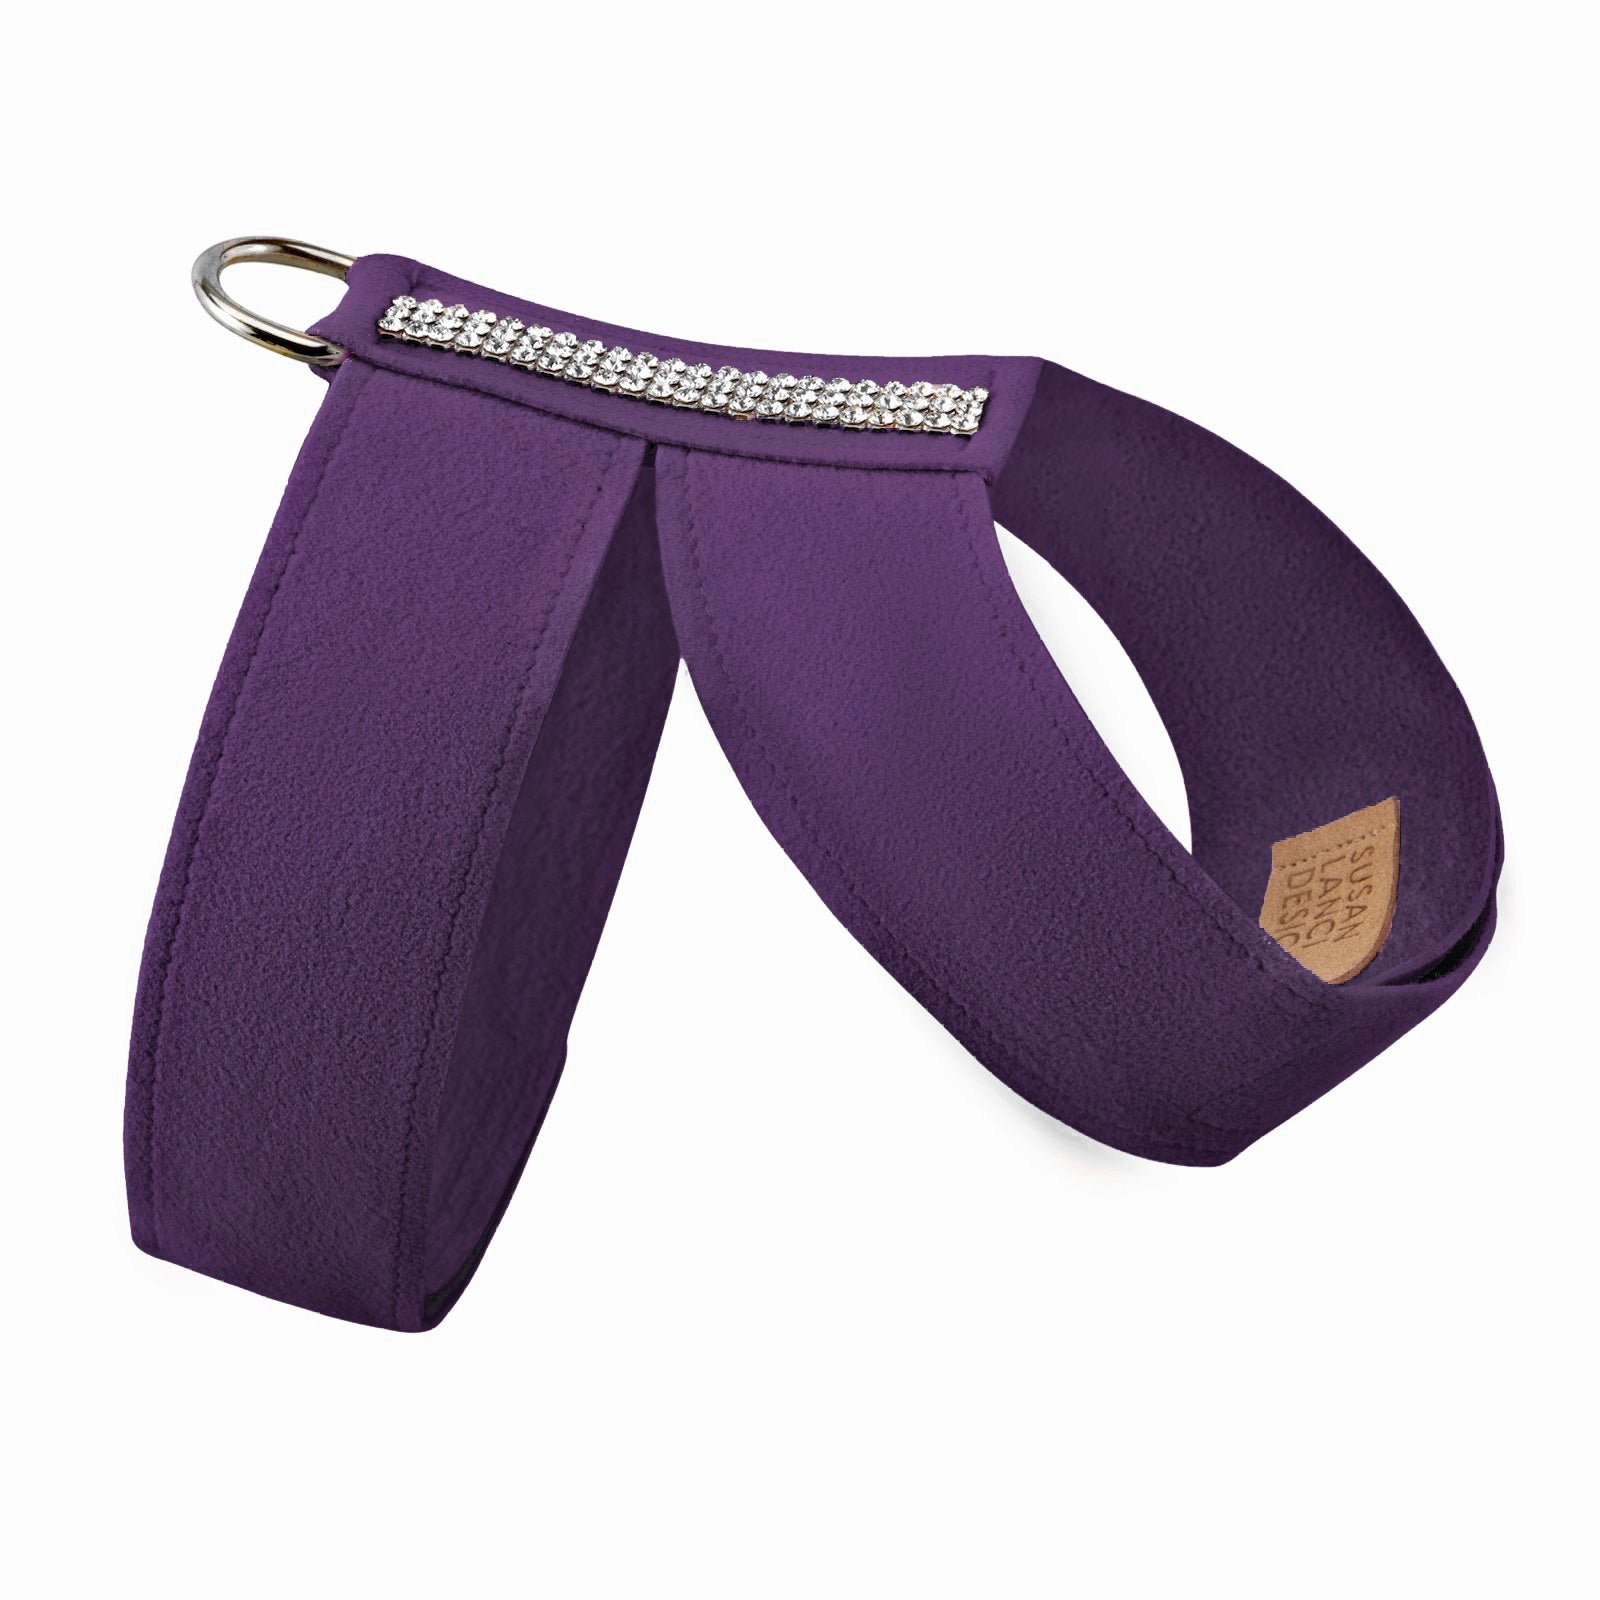 Giltmore 3-Row Crystal Pet Harness: Amethyst